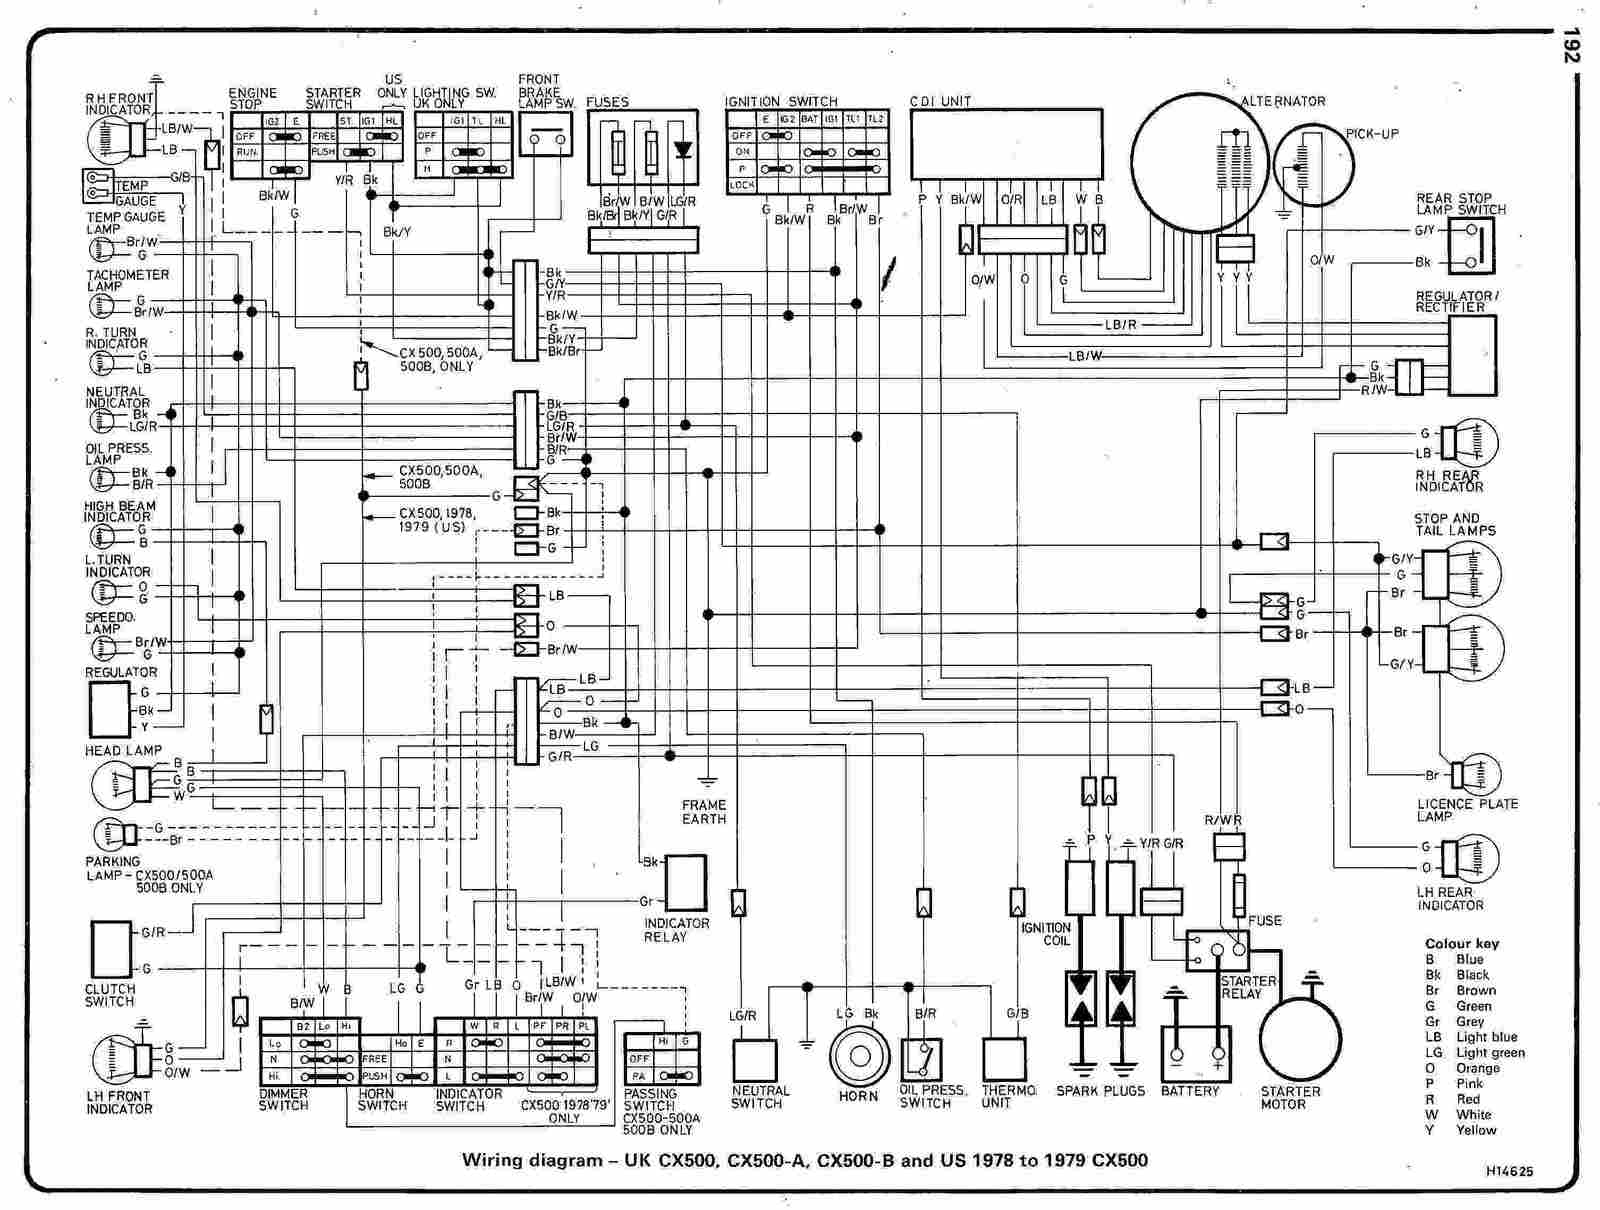 1977 Jeep Cj7 Electrical Diagram Somurich com